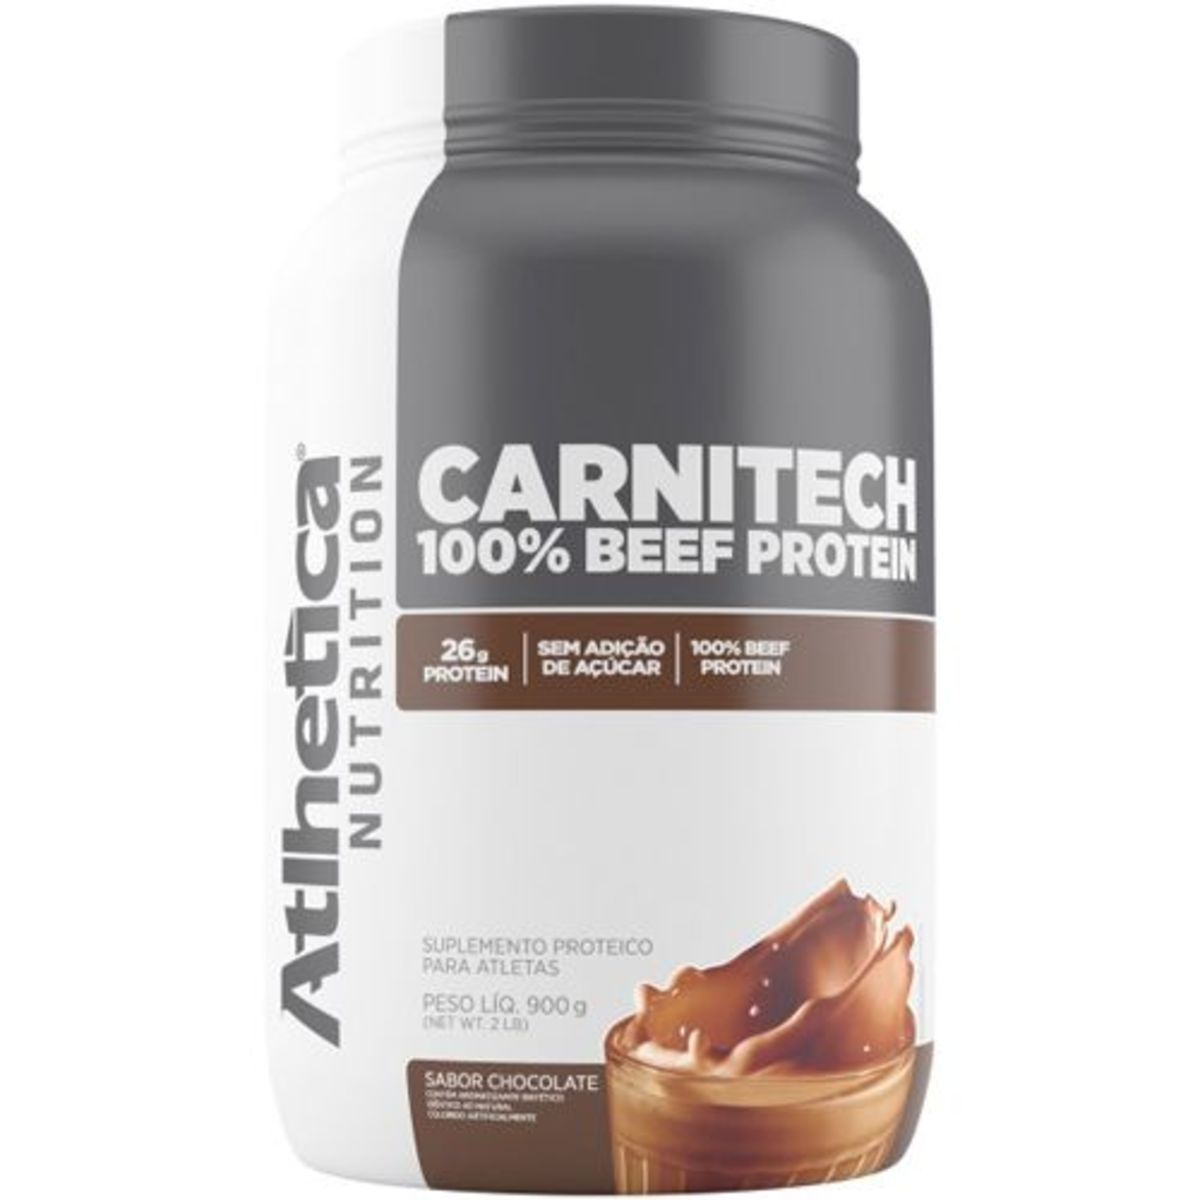 Carnitech 100% Beef Protein 900g Atlhetica Nutrition